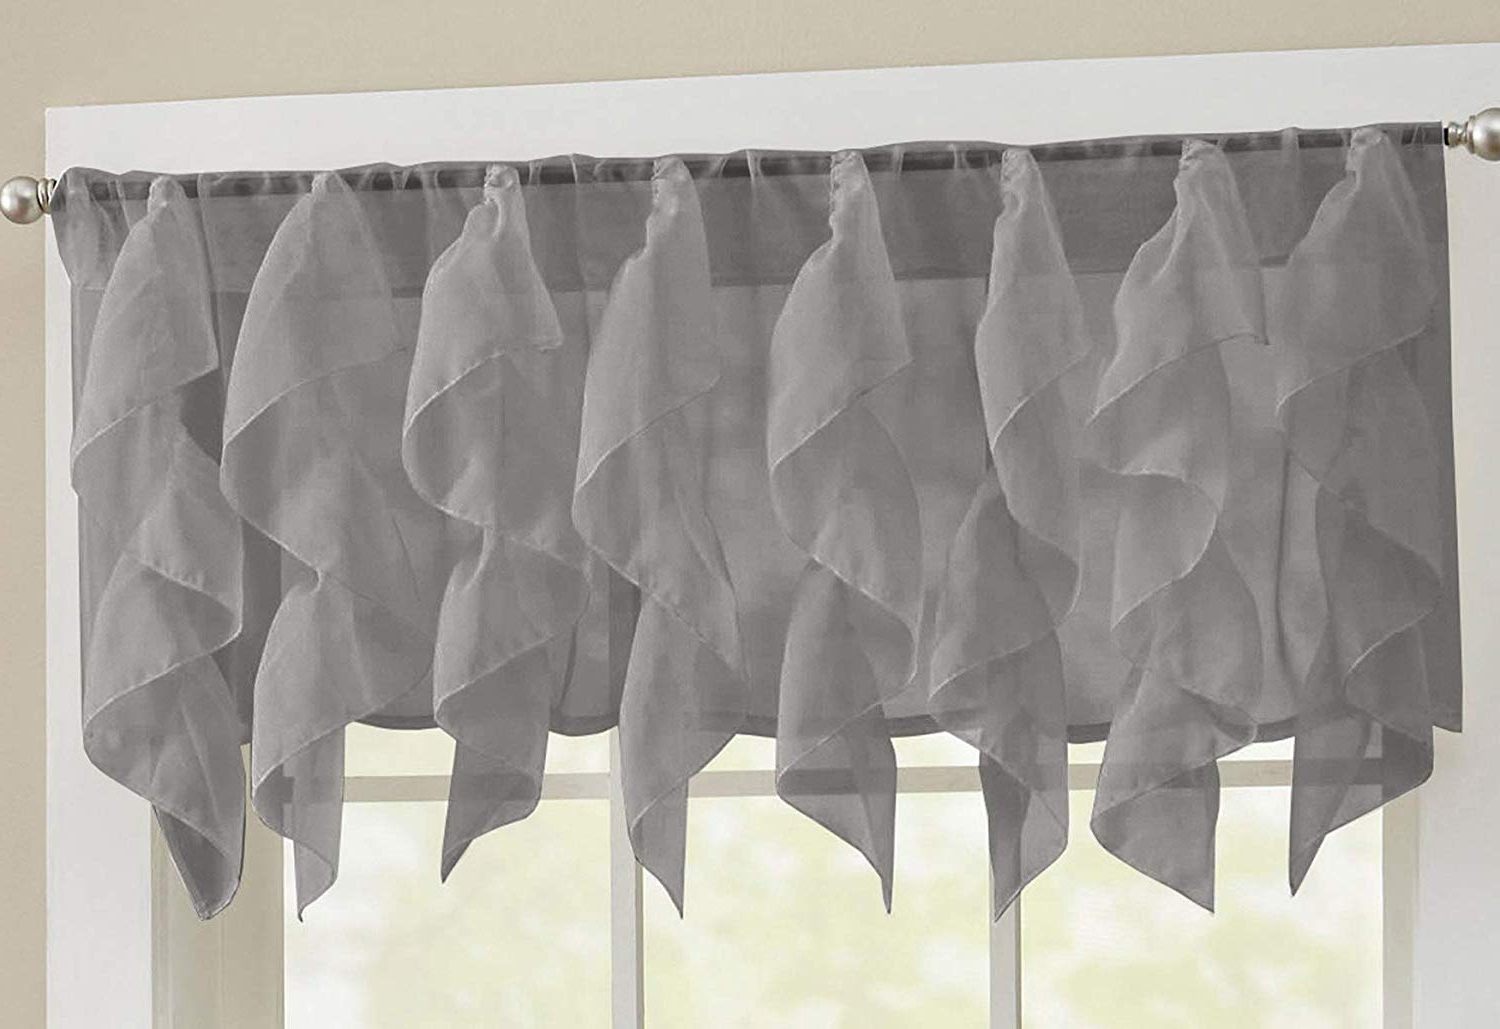 "Silver Vertical Ruffled Waterfall Valance And Curtain Tiers Within Most Recent Sweet Home Collection Veritcal Kitchen Curtain Sheer Cascading Ruffle Waterfall Window Treatment Choice Of Valance, 24"" Or 36"" Teir, And Kit, Gray (View 19 of 20)"